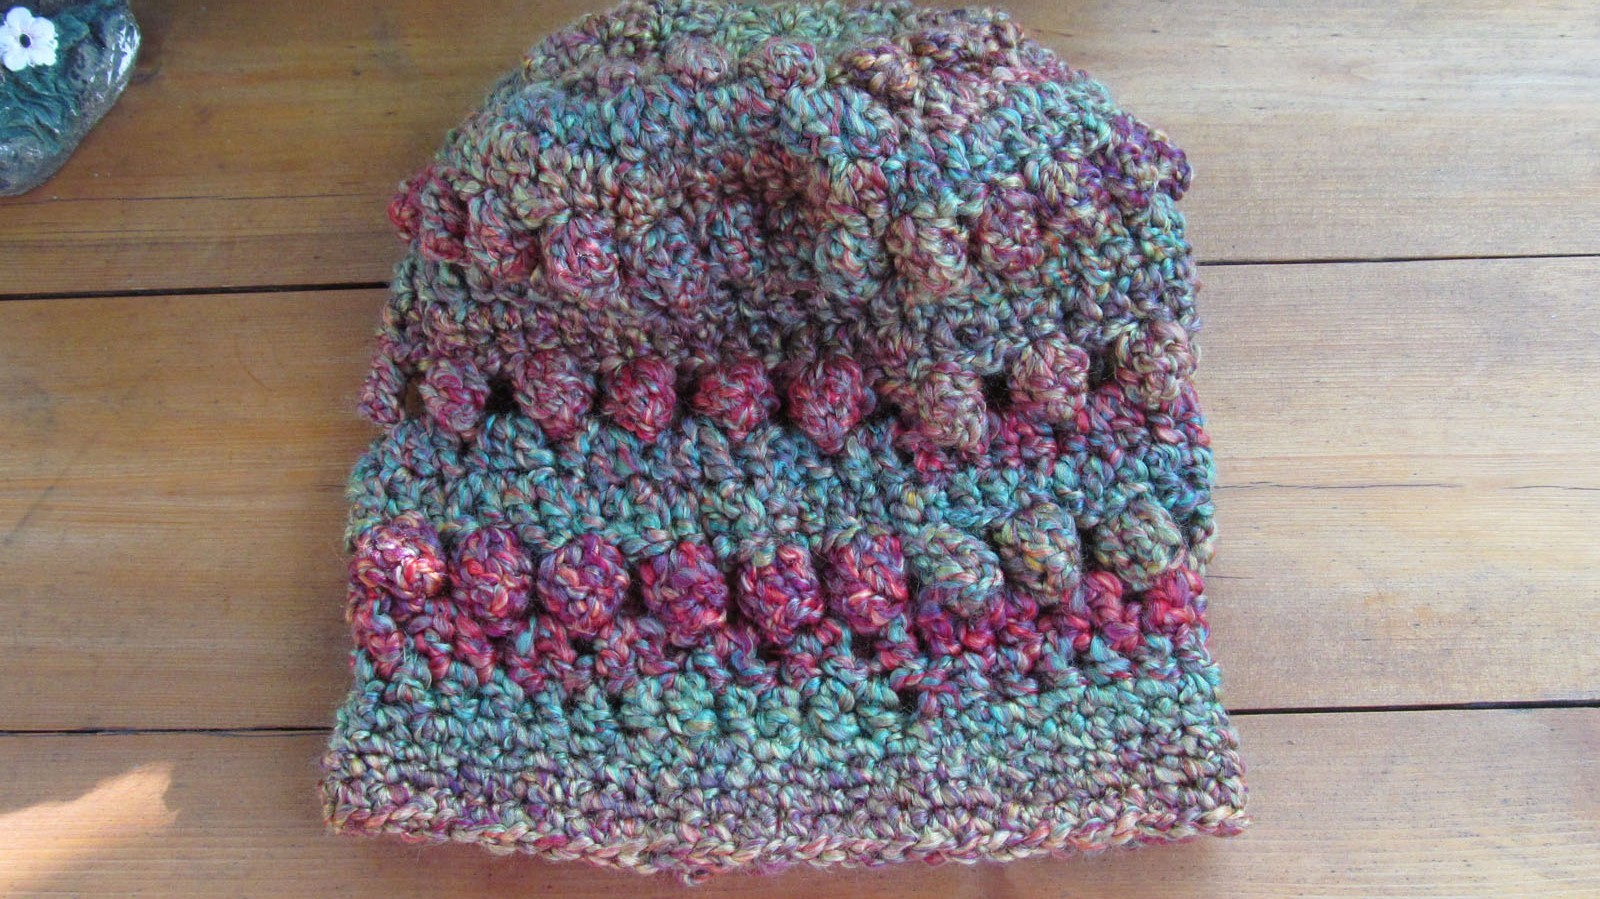 Crochet Hat, Green/Purple Mix - Handmade